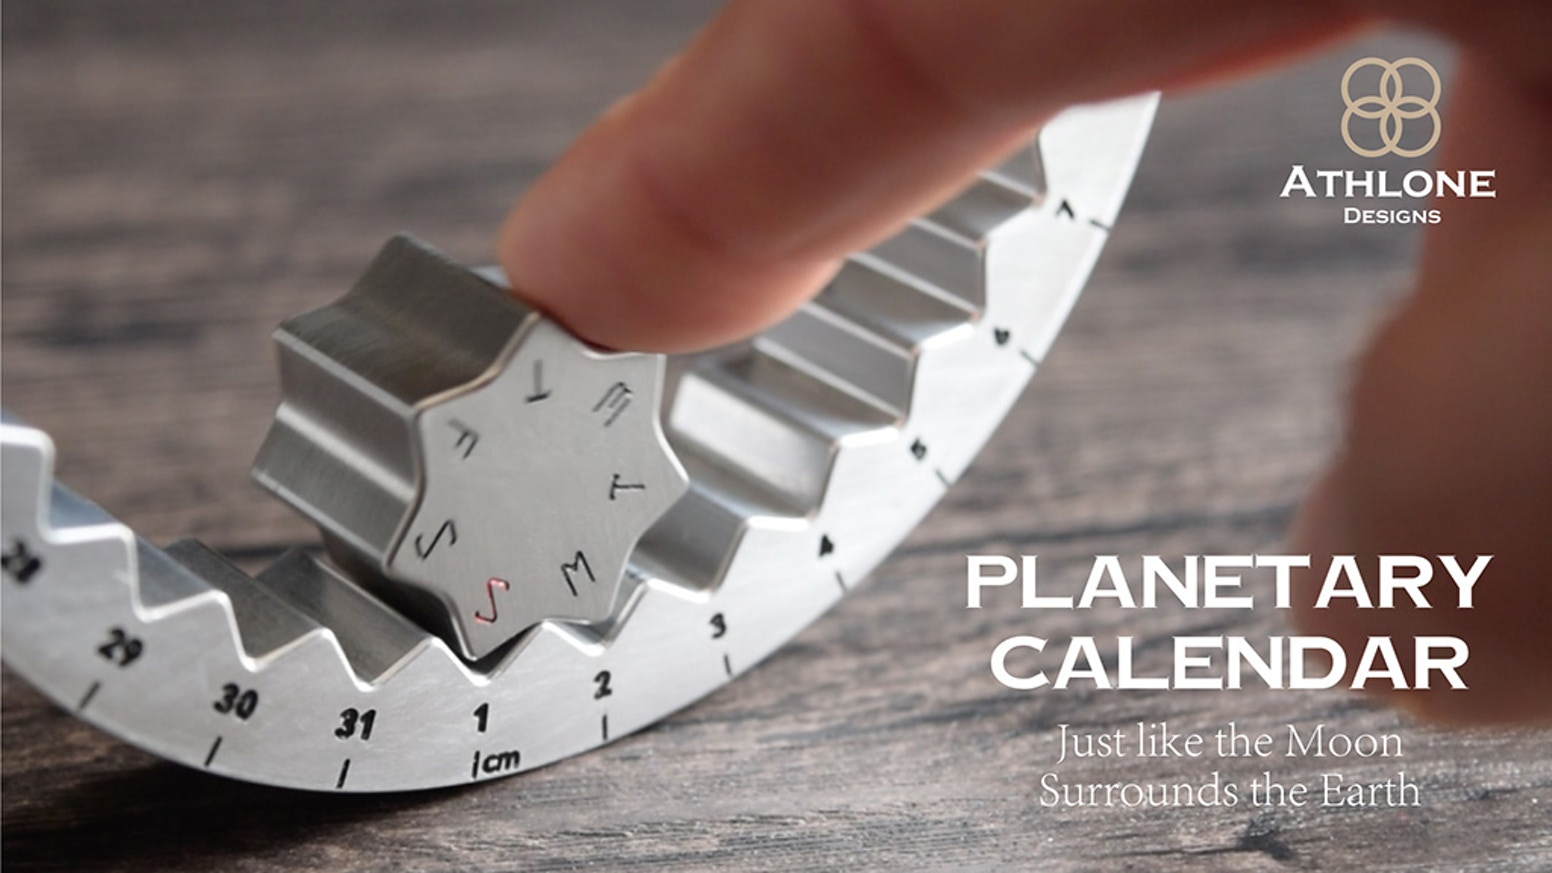 The worlds most innovative calendar: solid Titanium or Aluminum machined with precision. Patent pending design!